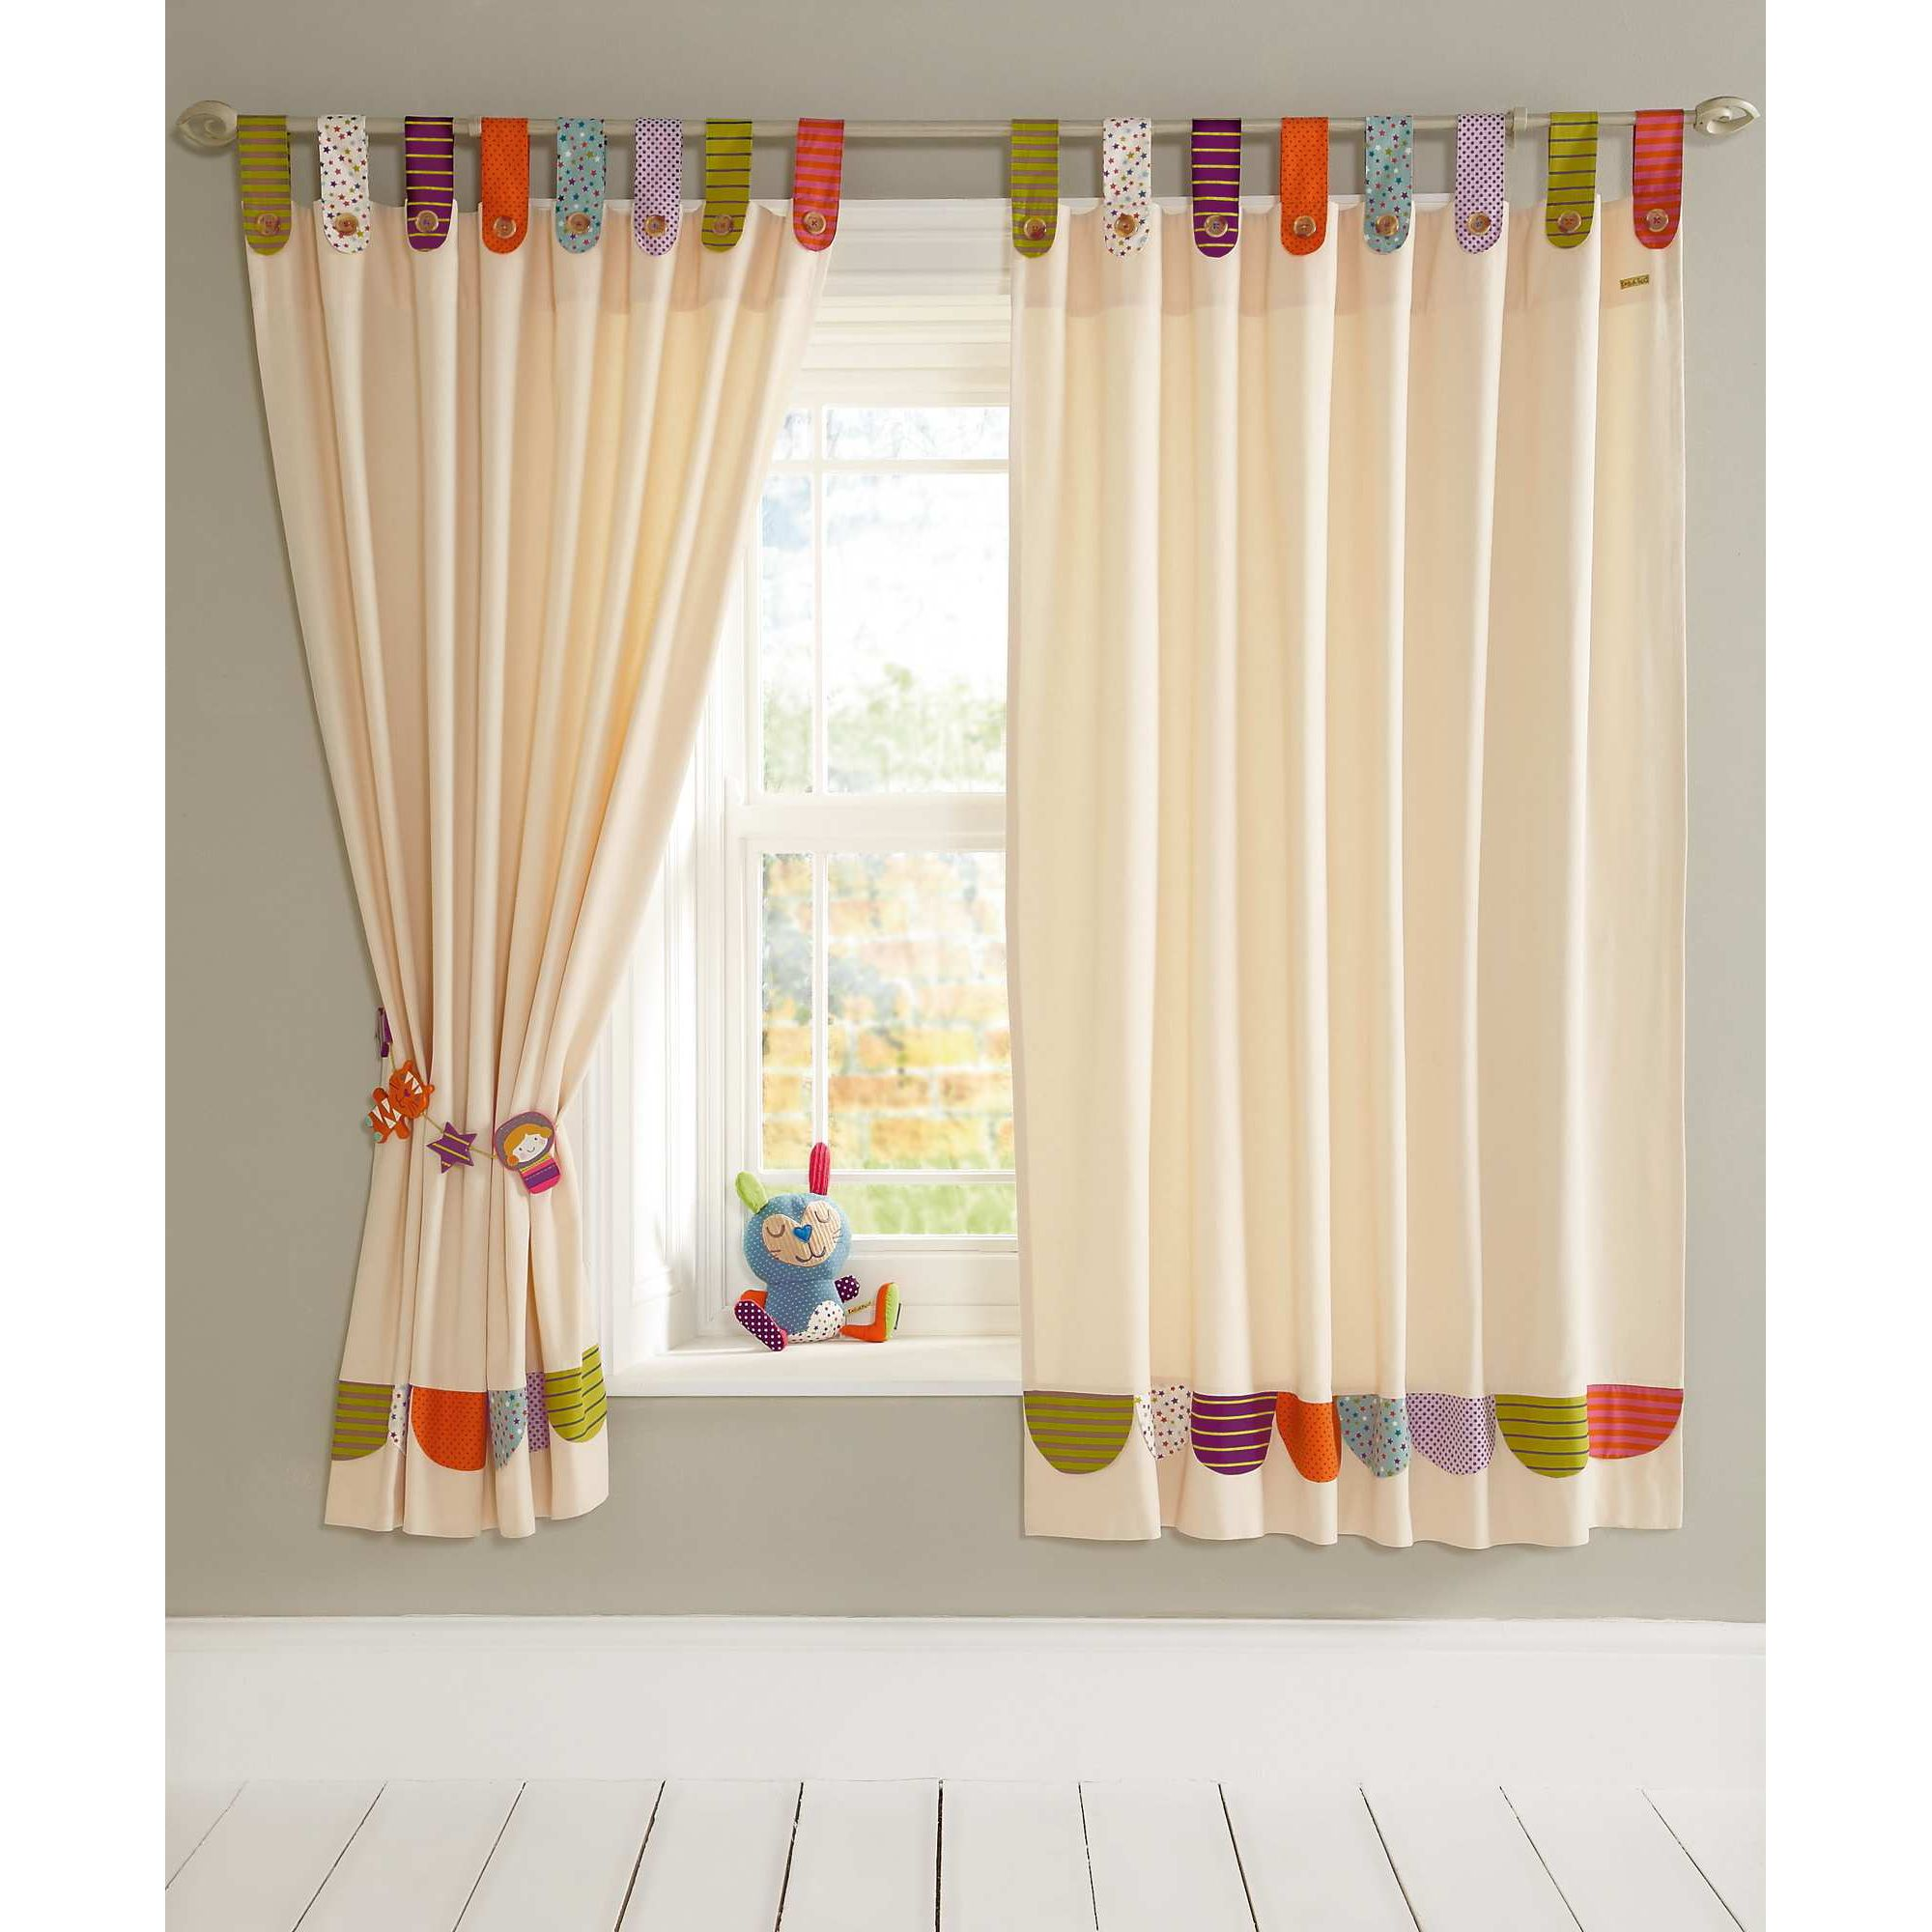 How to make tab top curtains - Mamas Papas Timbuktales Tab Top Curtains